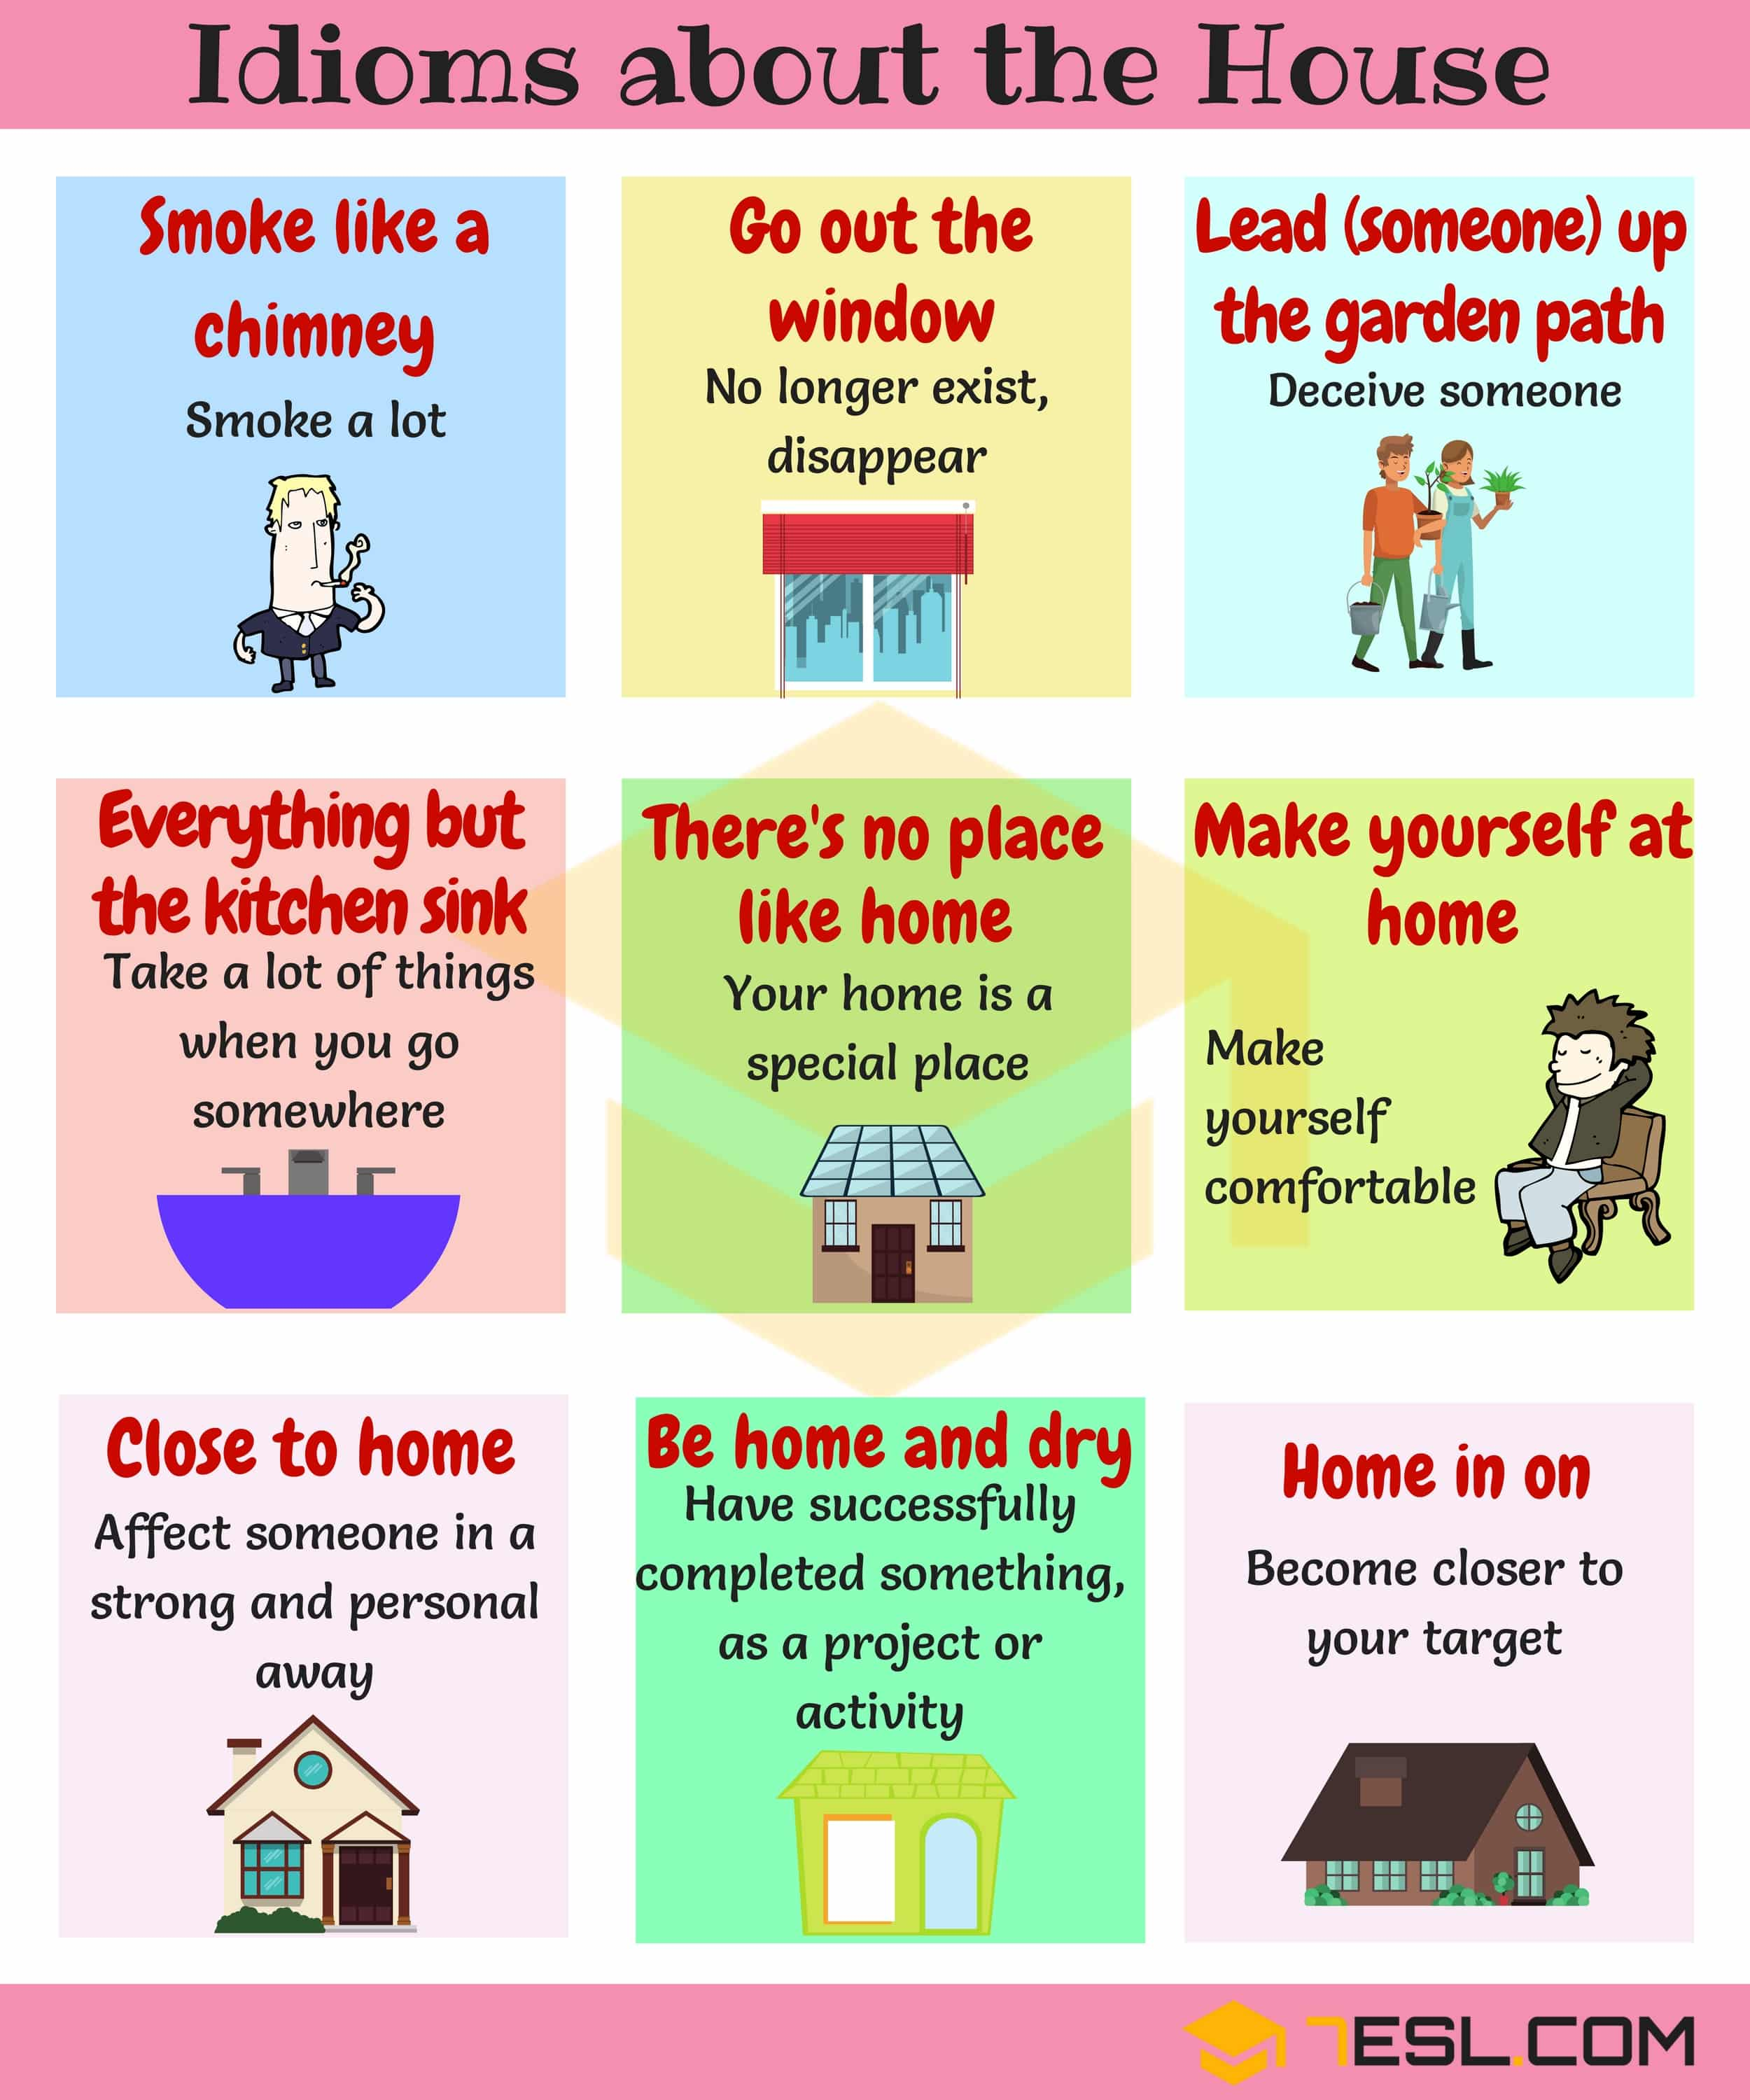 Home Idioms: 28 Useful Idioms About The House And Home